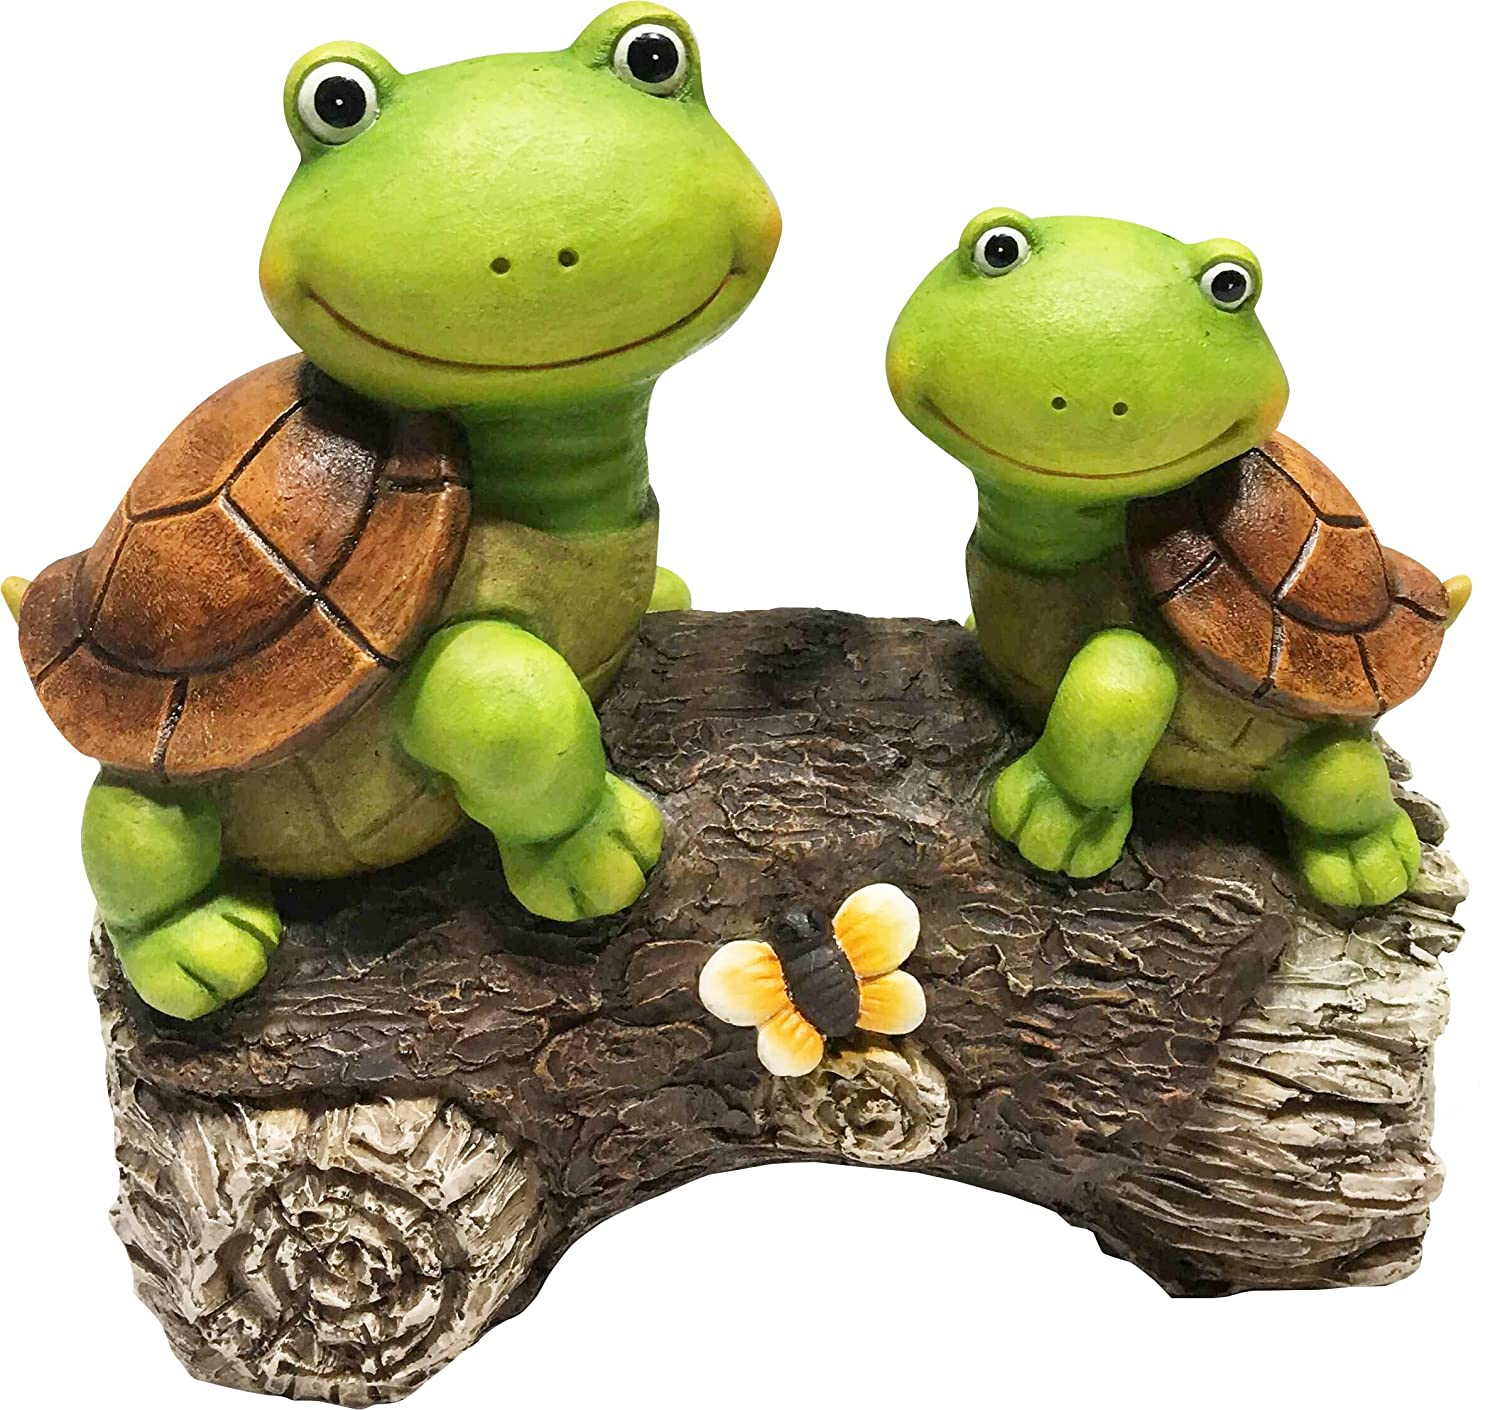 "LA JOLIE MUSE Garden Statue Lawn Ornaments - 9"" Cute Frog Face Turtles on a Log Resin Animal Sculpture Indoor Outdoor Art Decor, Patio Yard Decorations, Housewarming Gift"